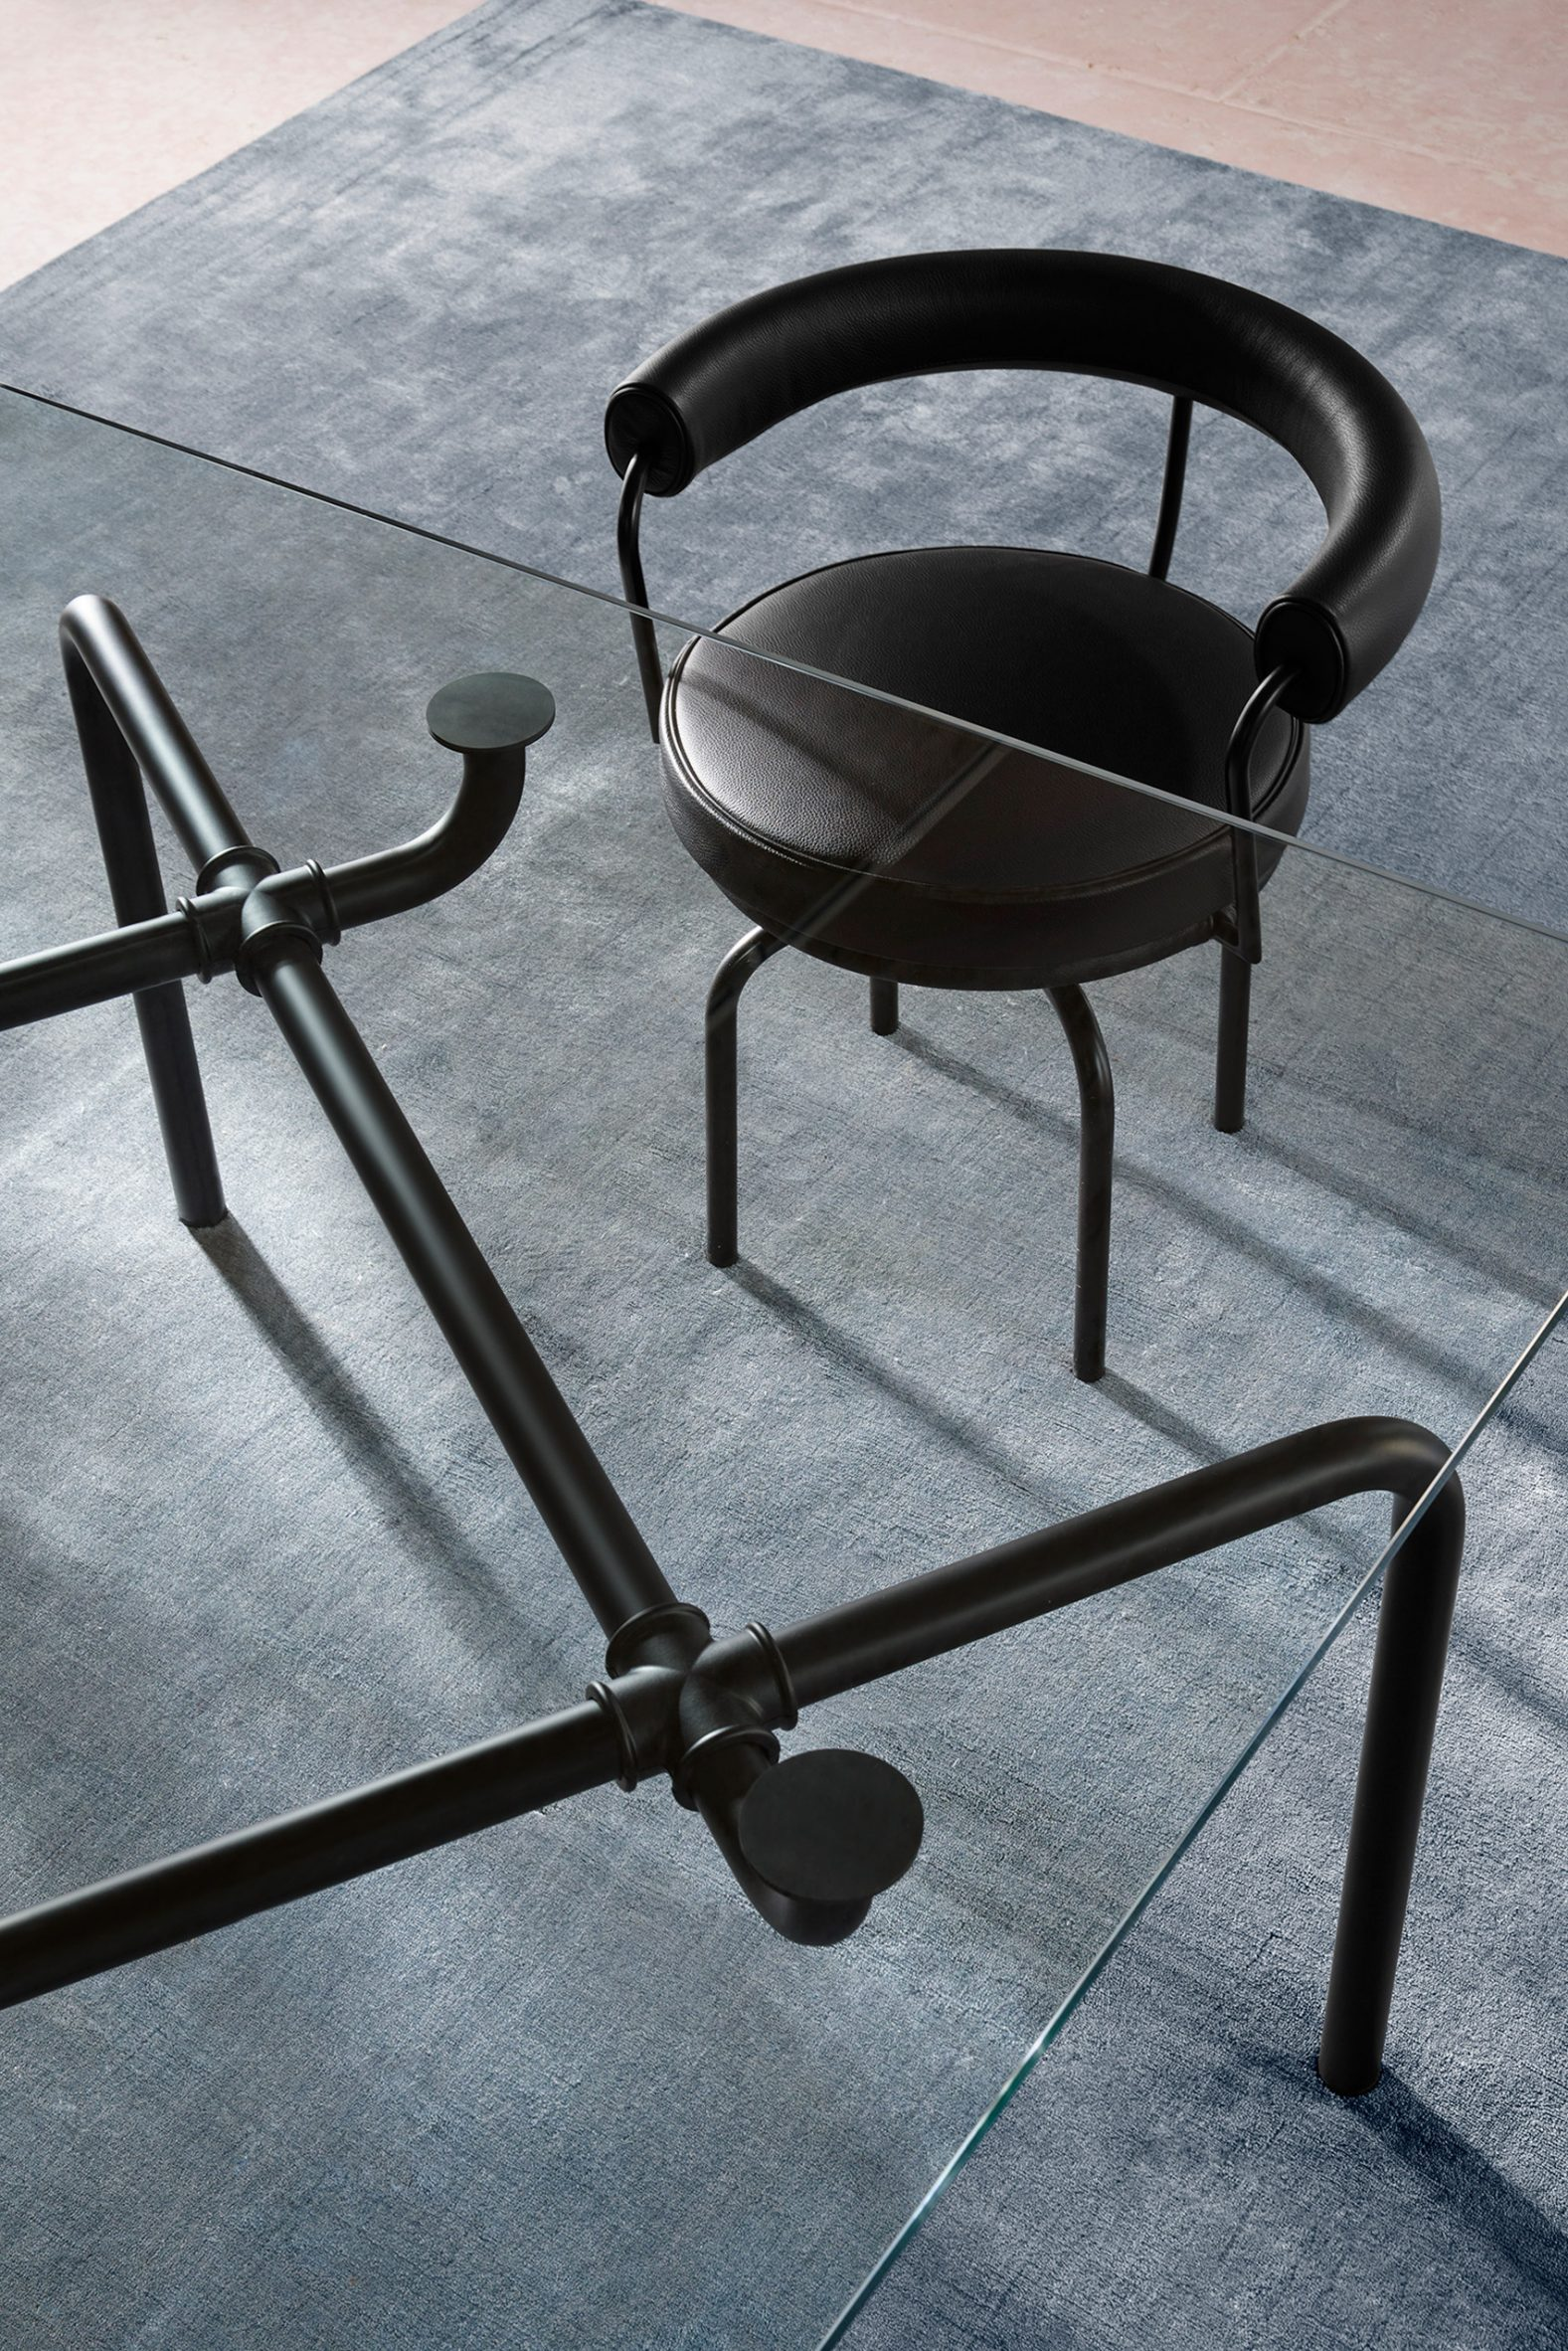 The Edison table with black-painted steel legs